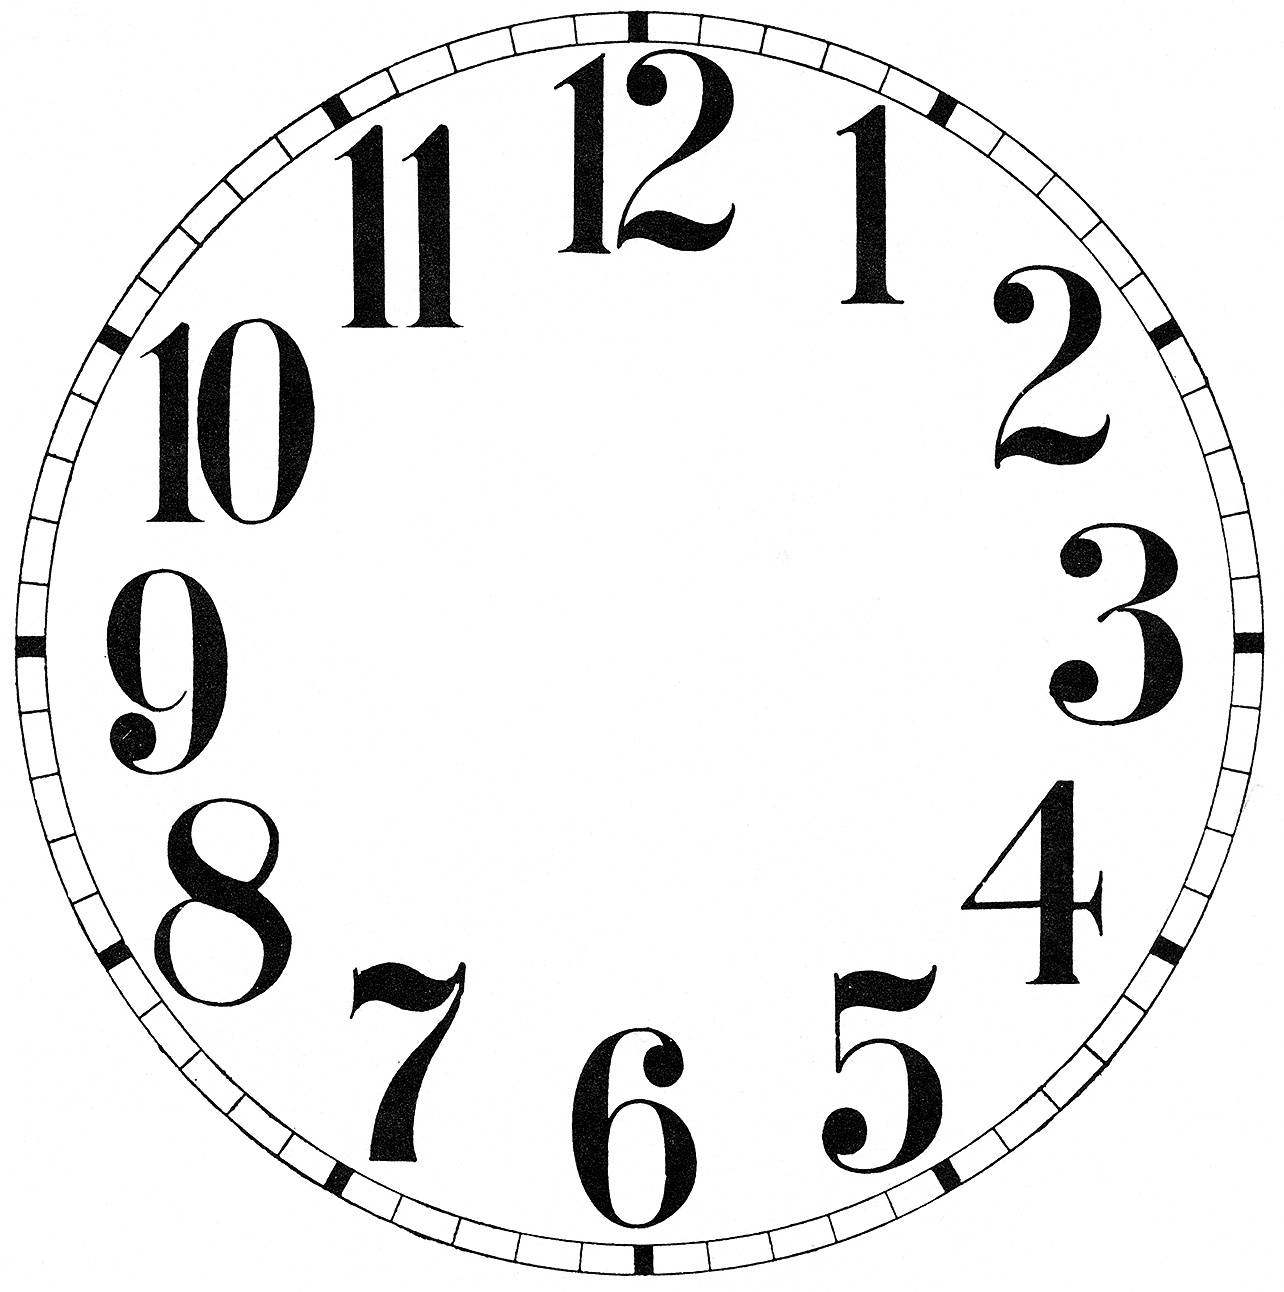 11 Clock Face Images - Print Your Own! - The Graphics Fairy - Free Printable Clock Faces